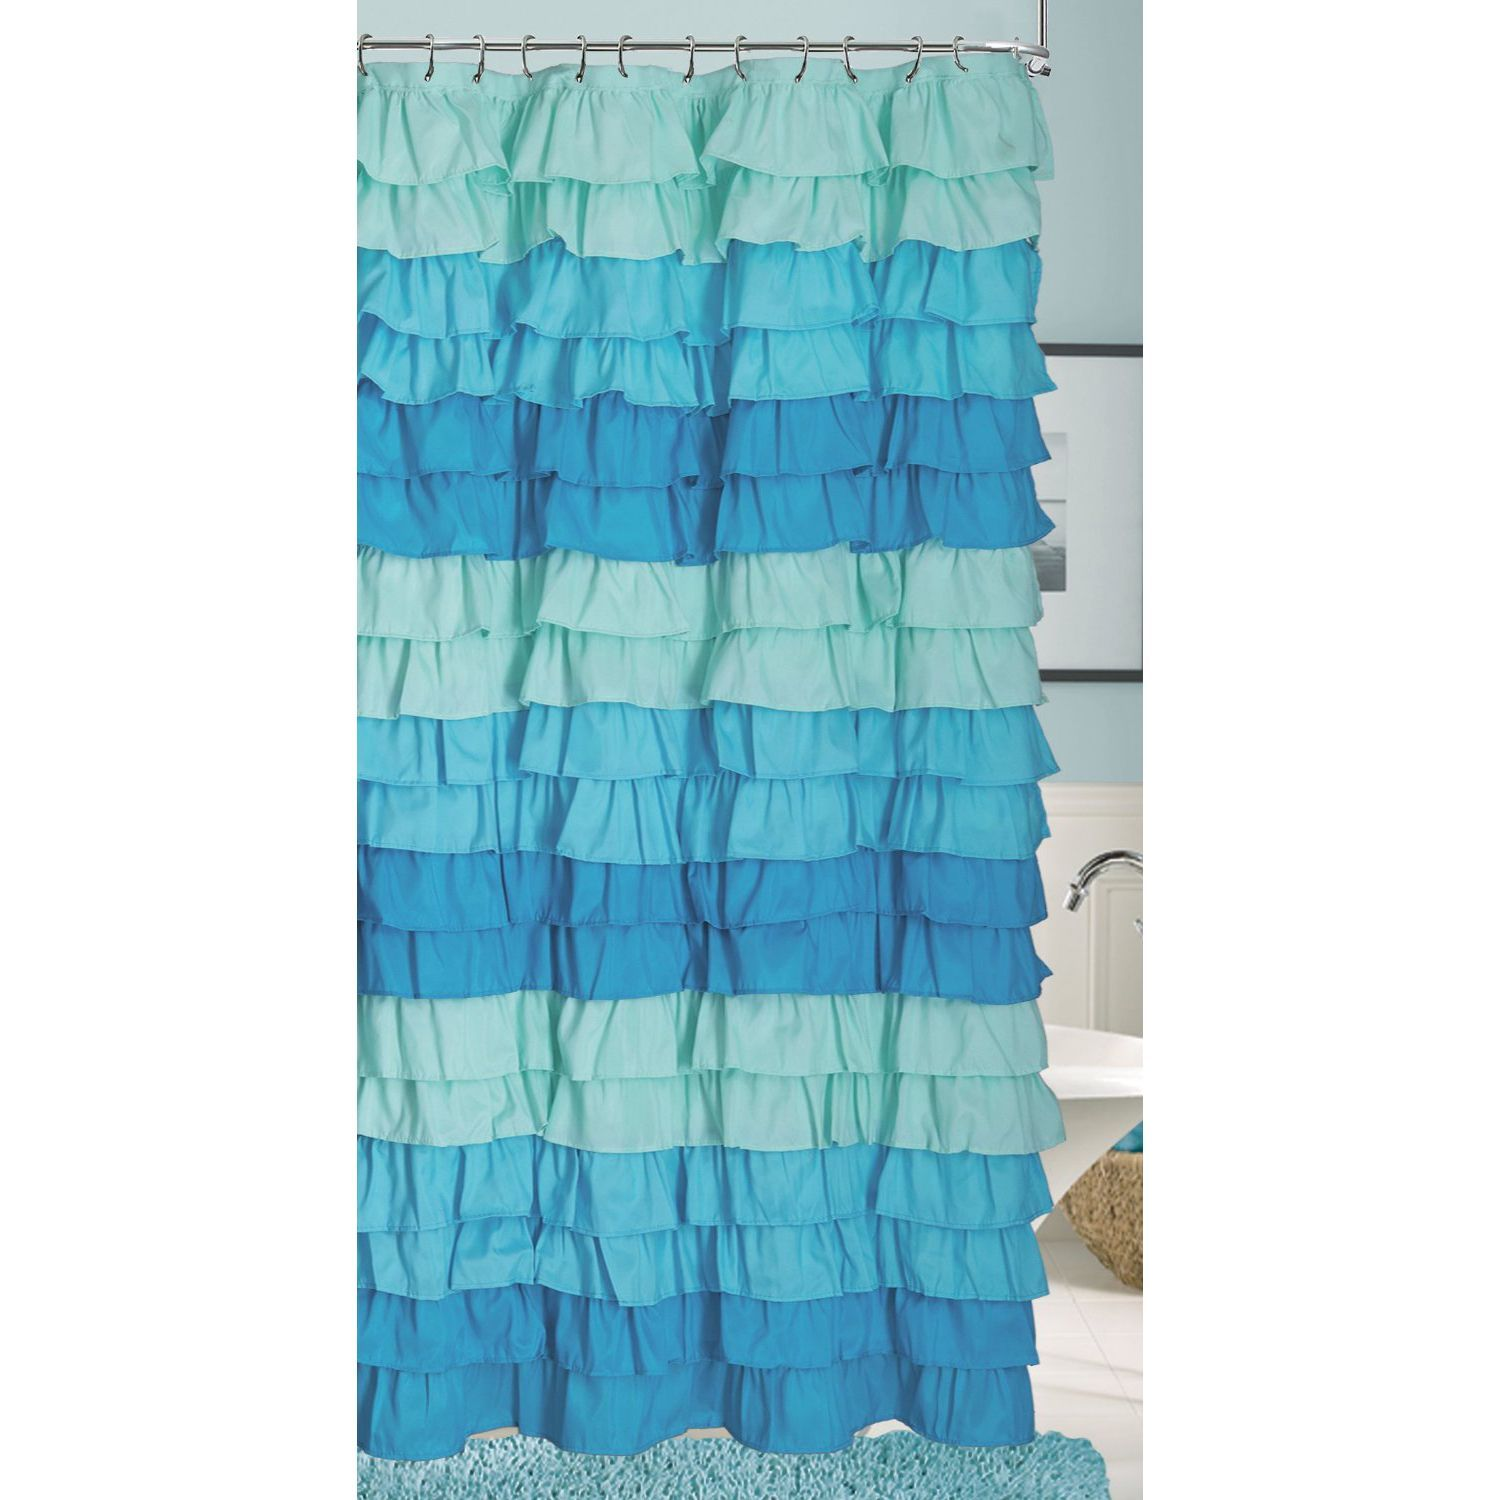 Spice up shower time with this Venezia shower curtain that adds ...